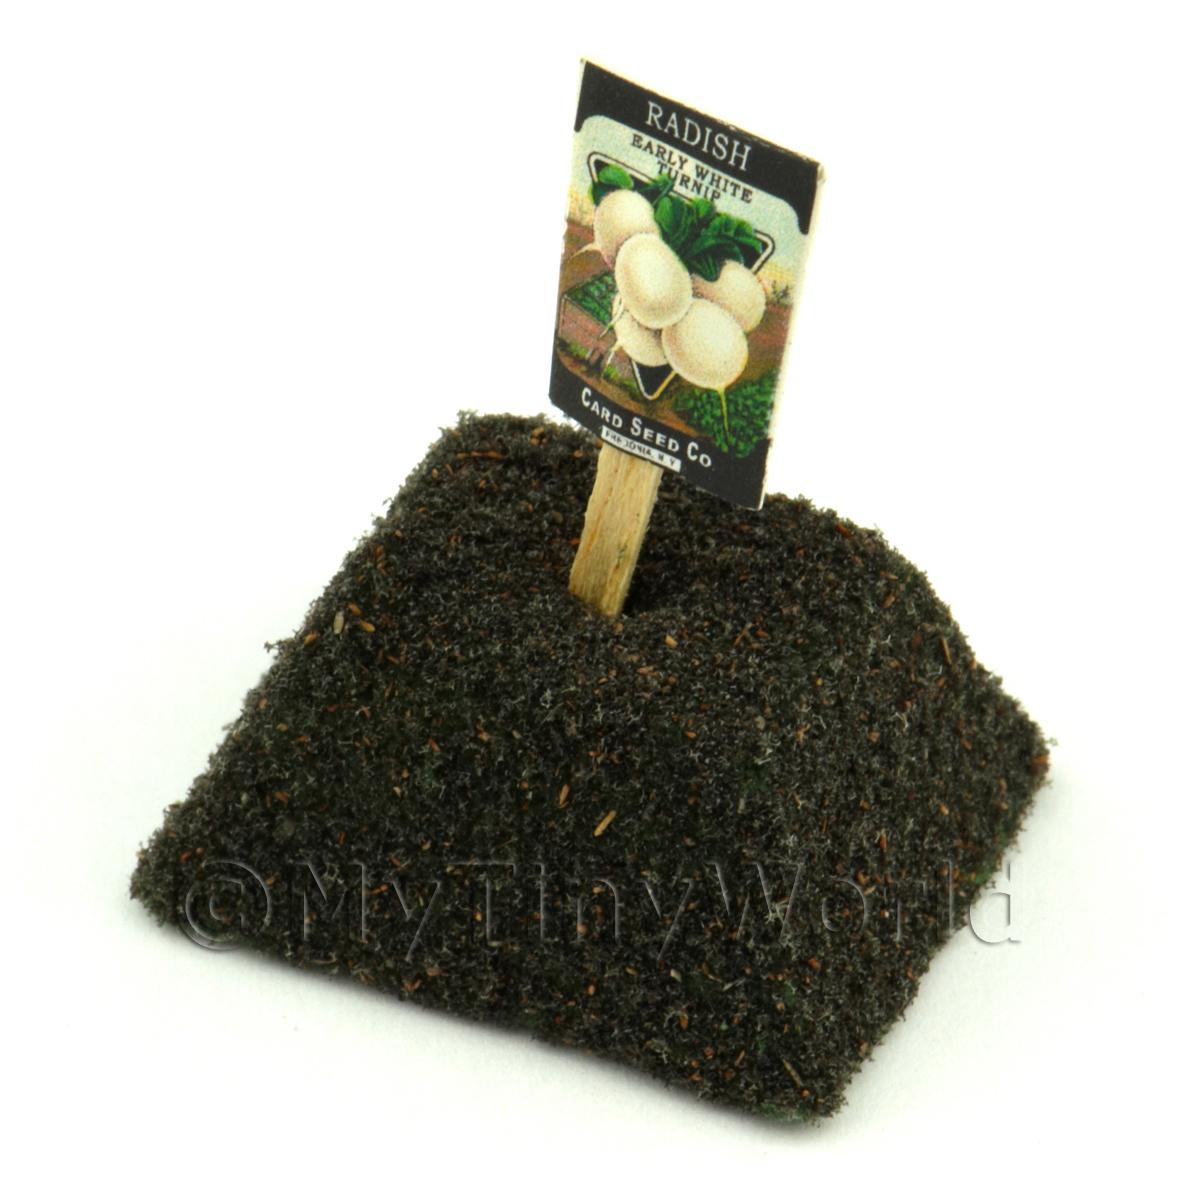 Dolls House Miniature White Radish Seed Packet With A Stick